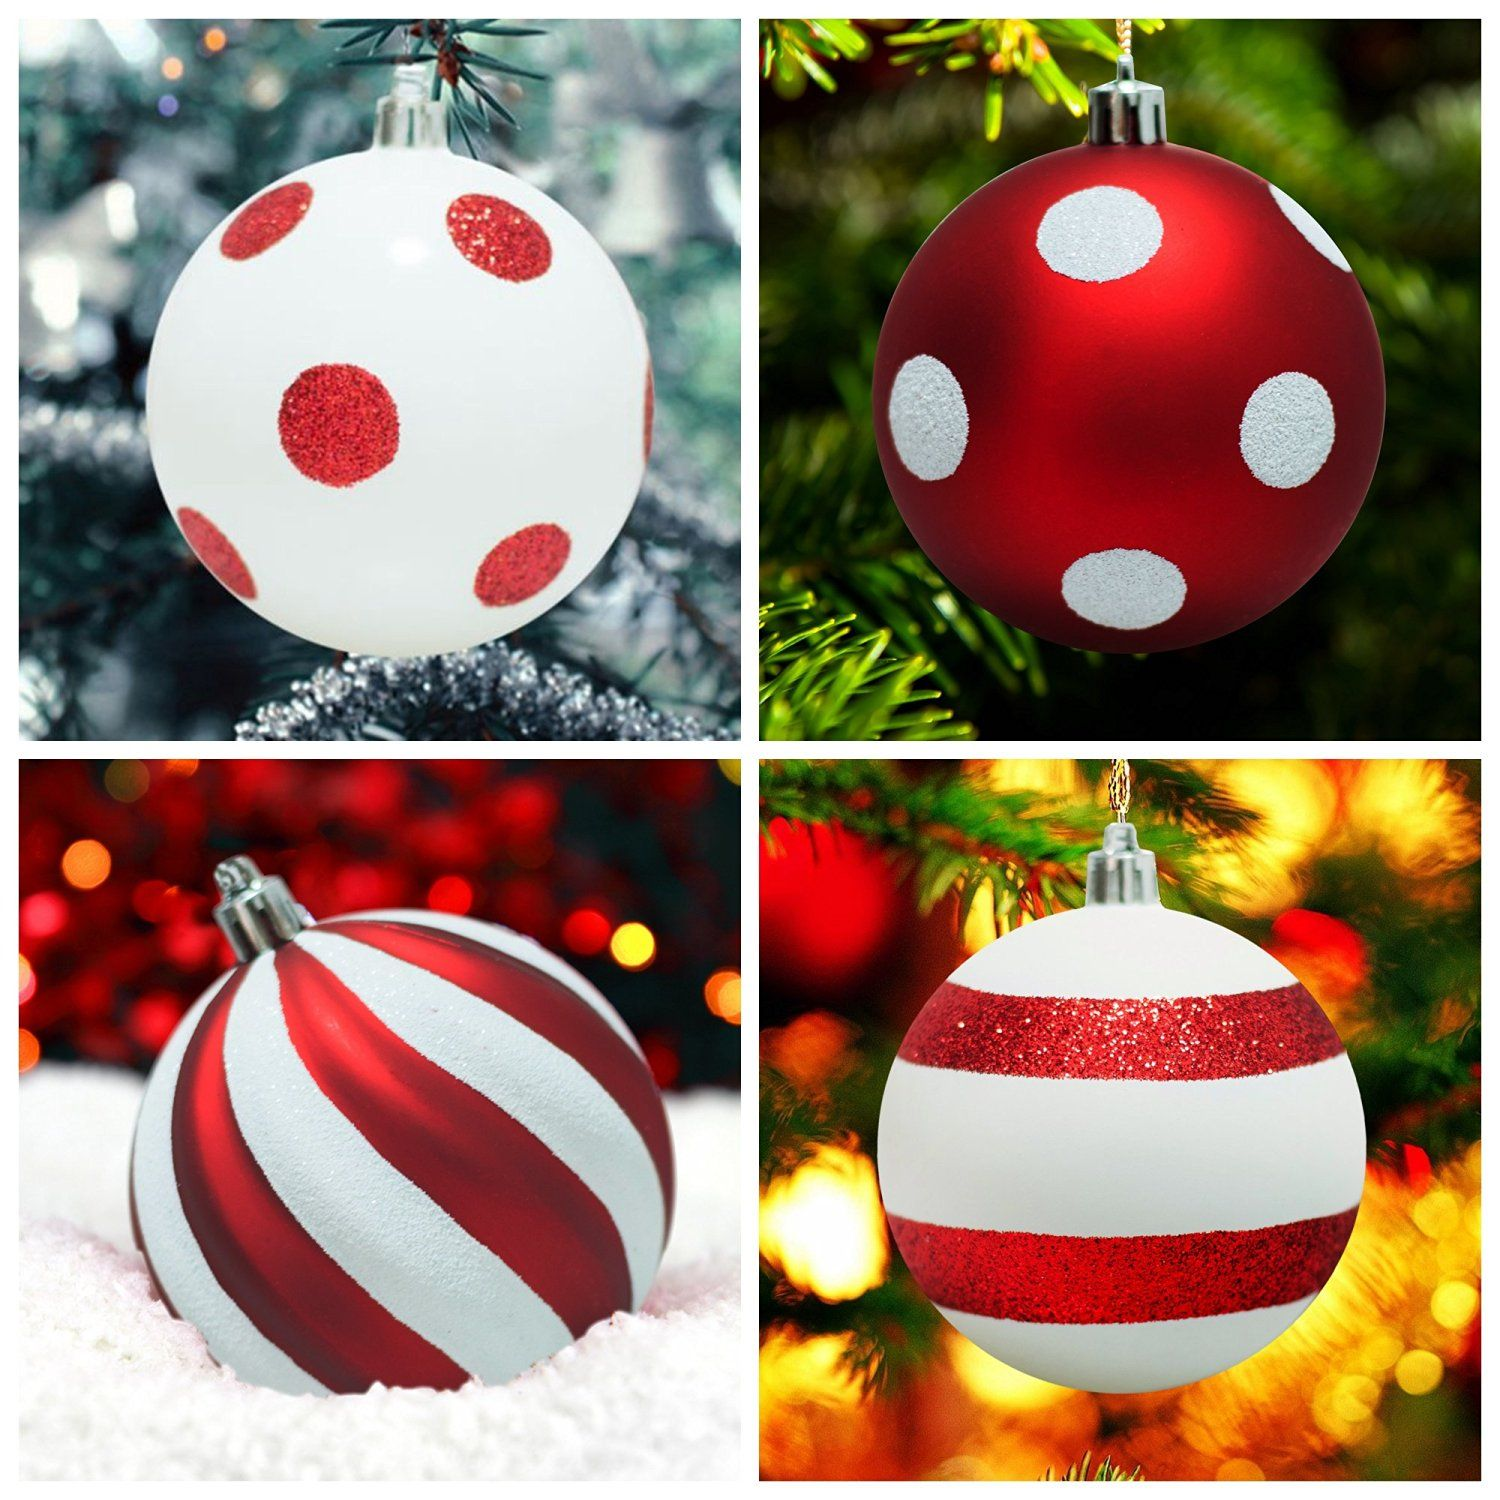 Shatterproof Christmas Tree Baubles Decorations With Polka Dots And Stripe Design Xmas Trees Wedding Candy Themed Party Ba